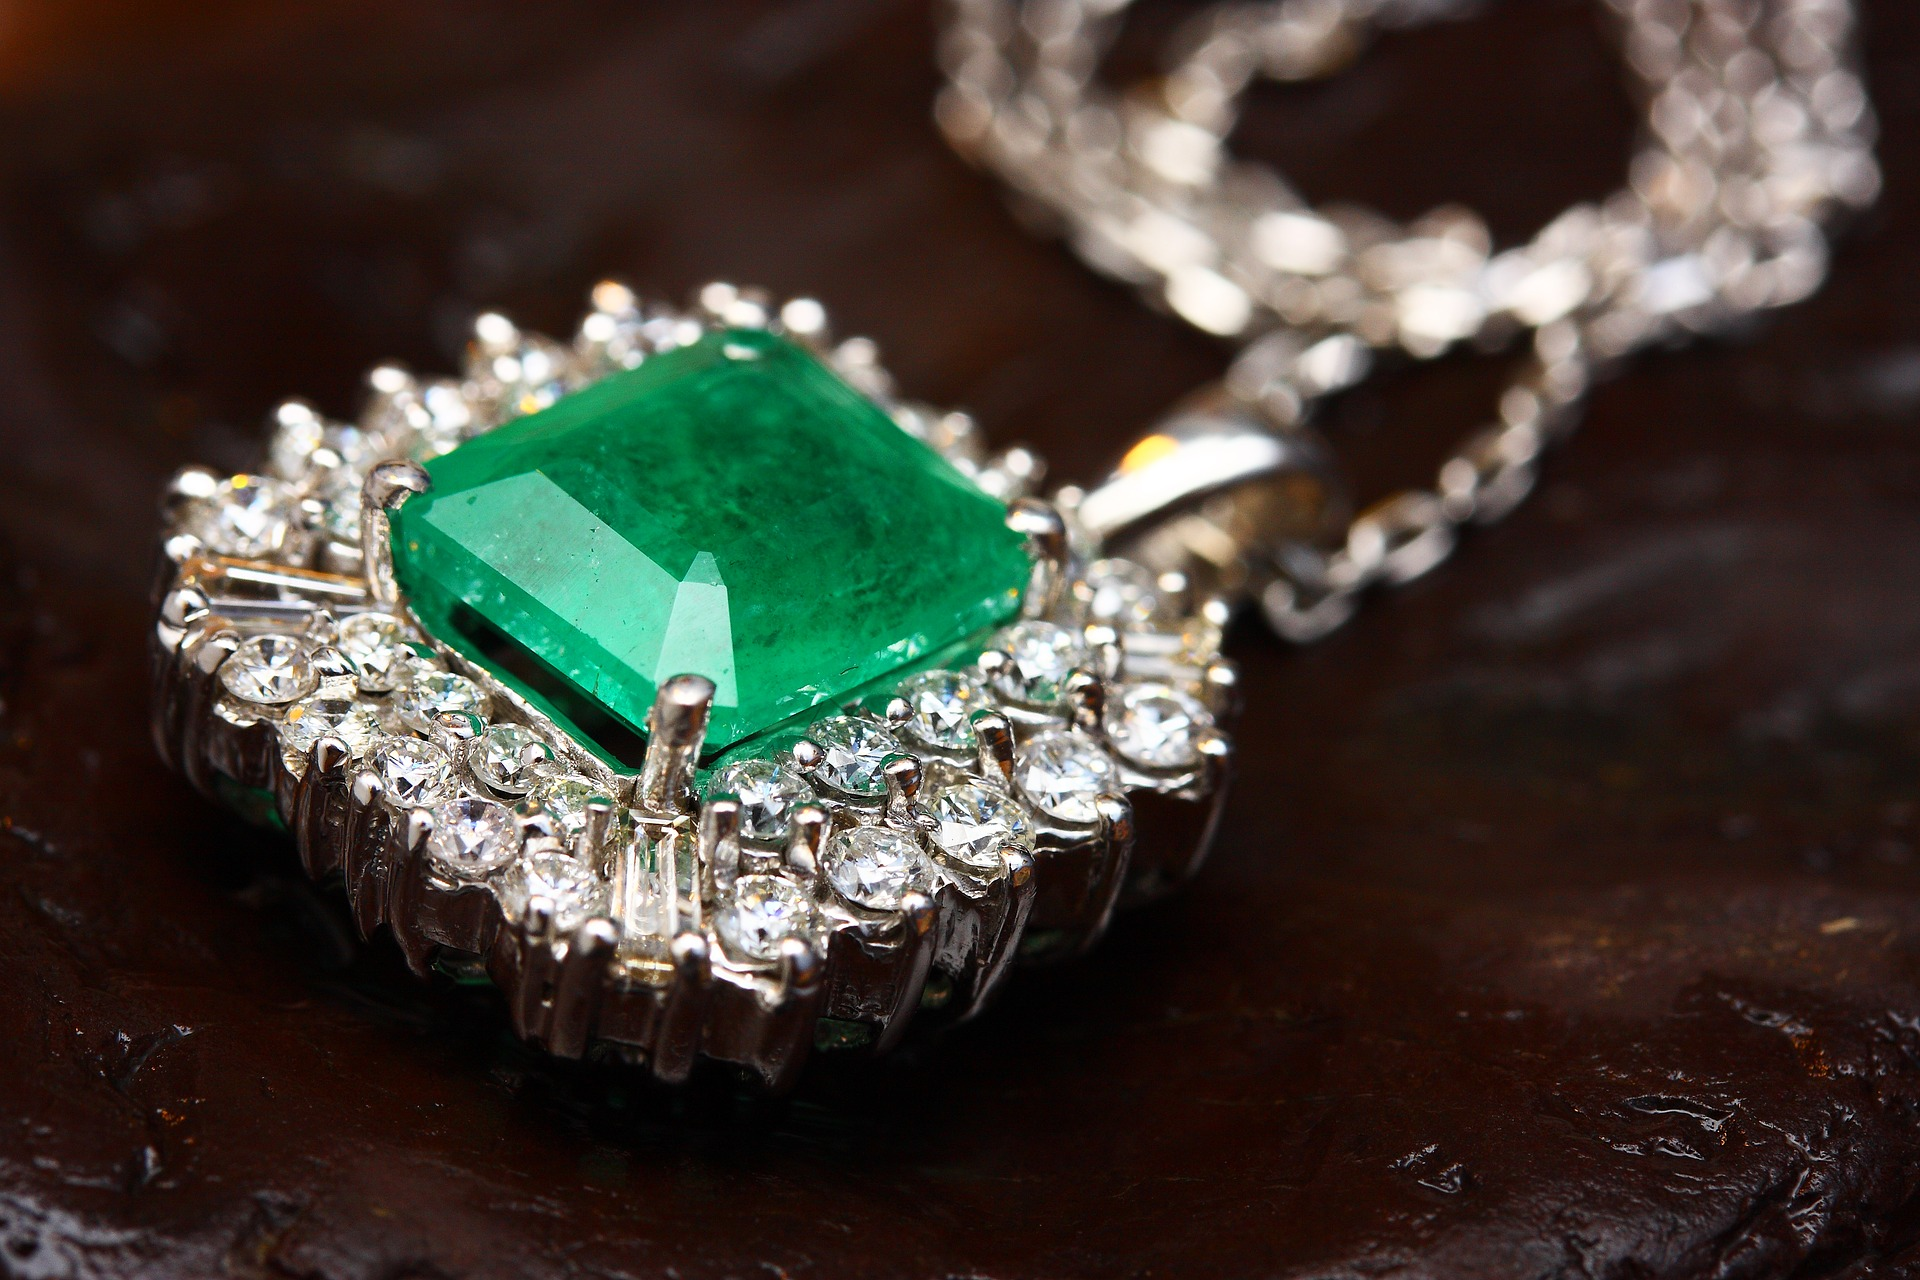 Emerald qualities by their country of origin diamondere blog.